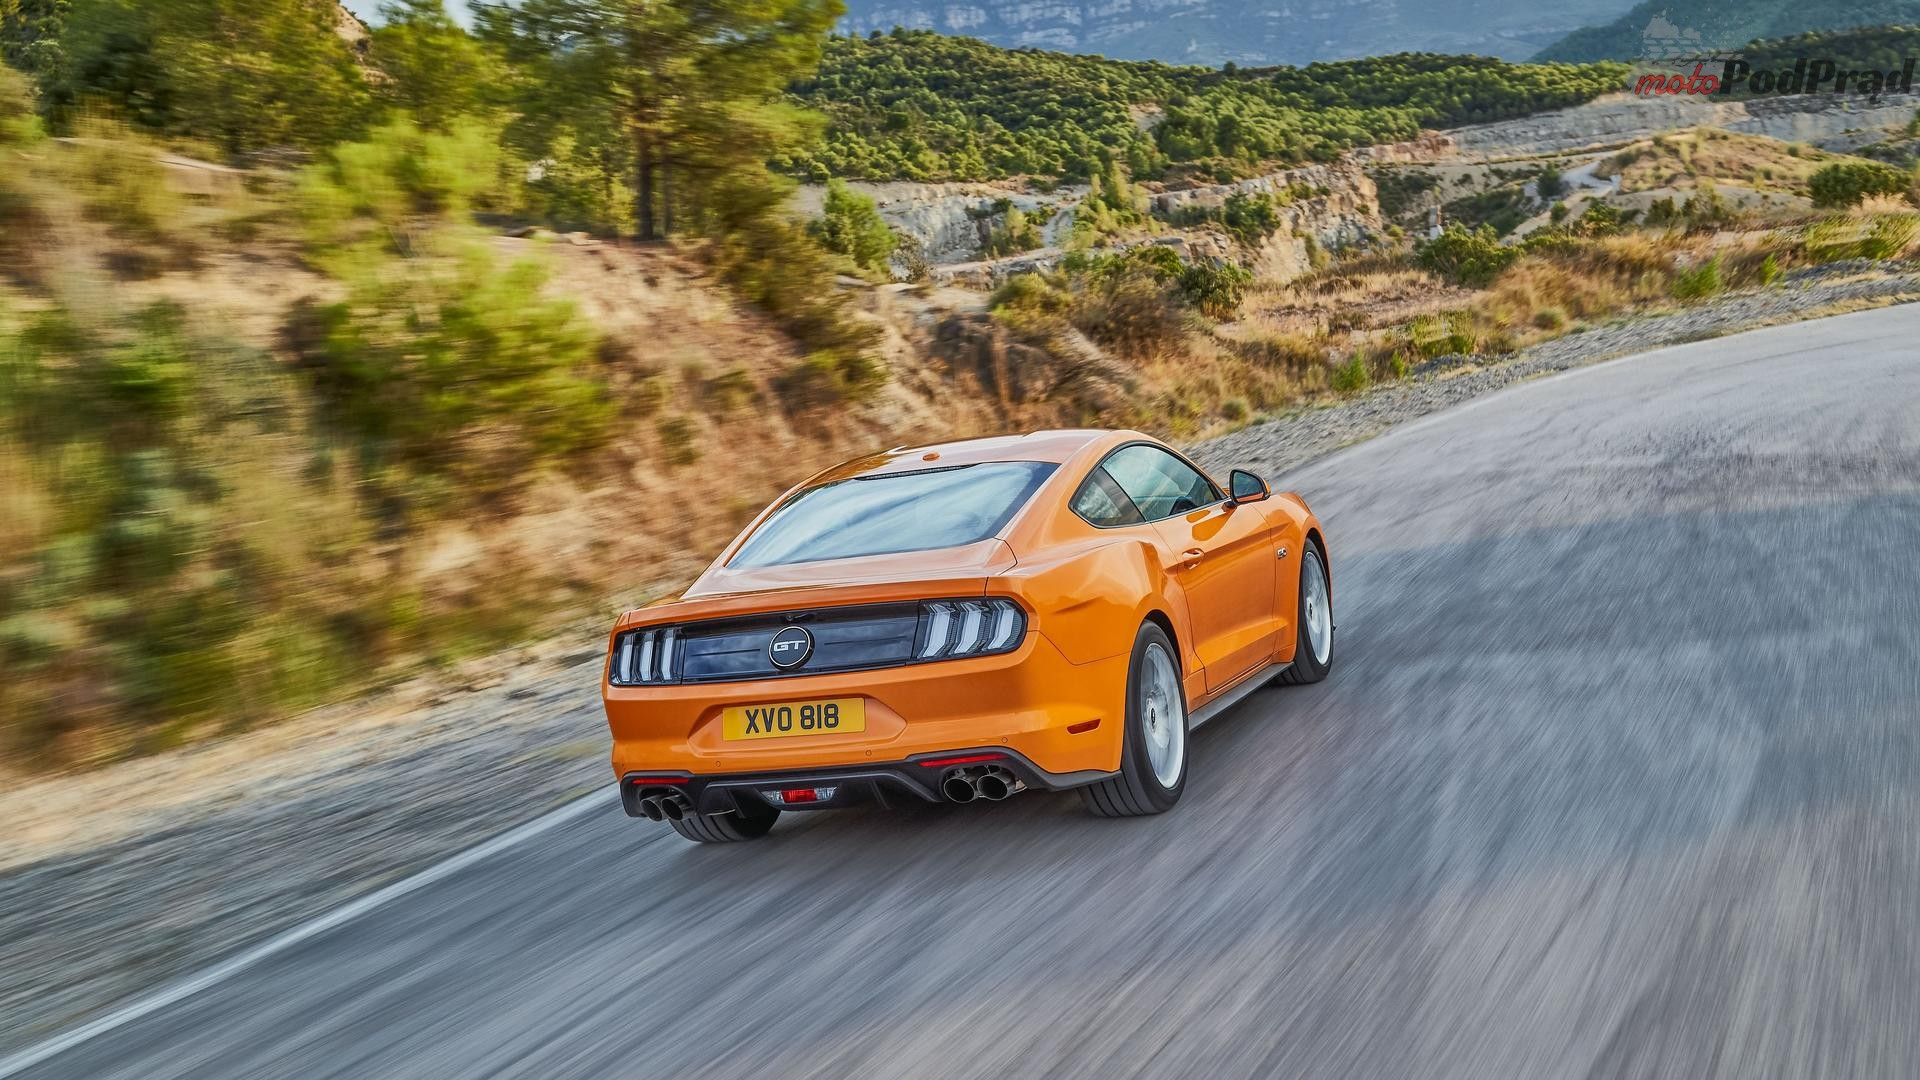 2018 ford mustang euro spec 1 Nowy Mustang gotowy na Europę